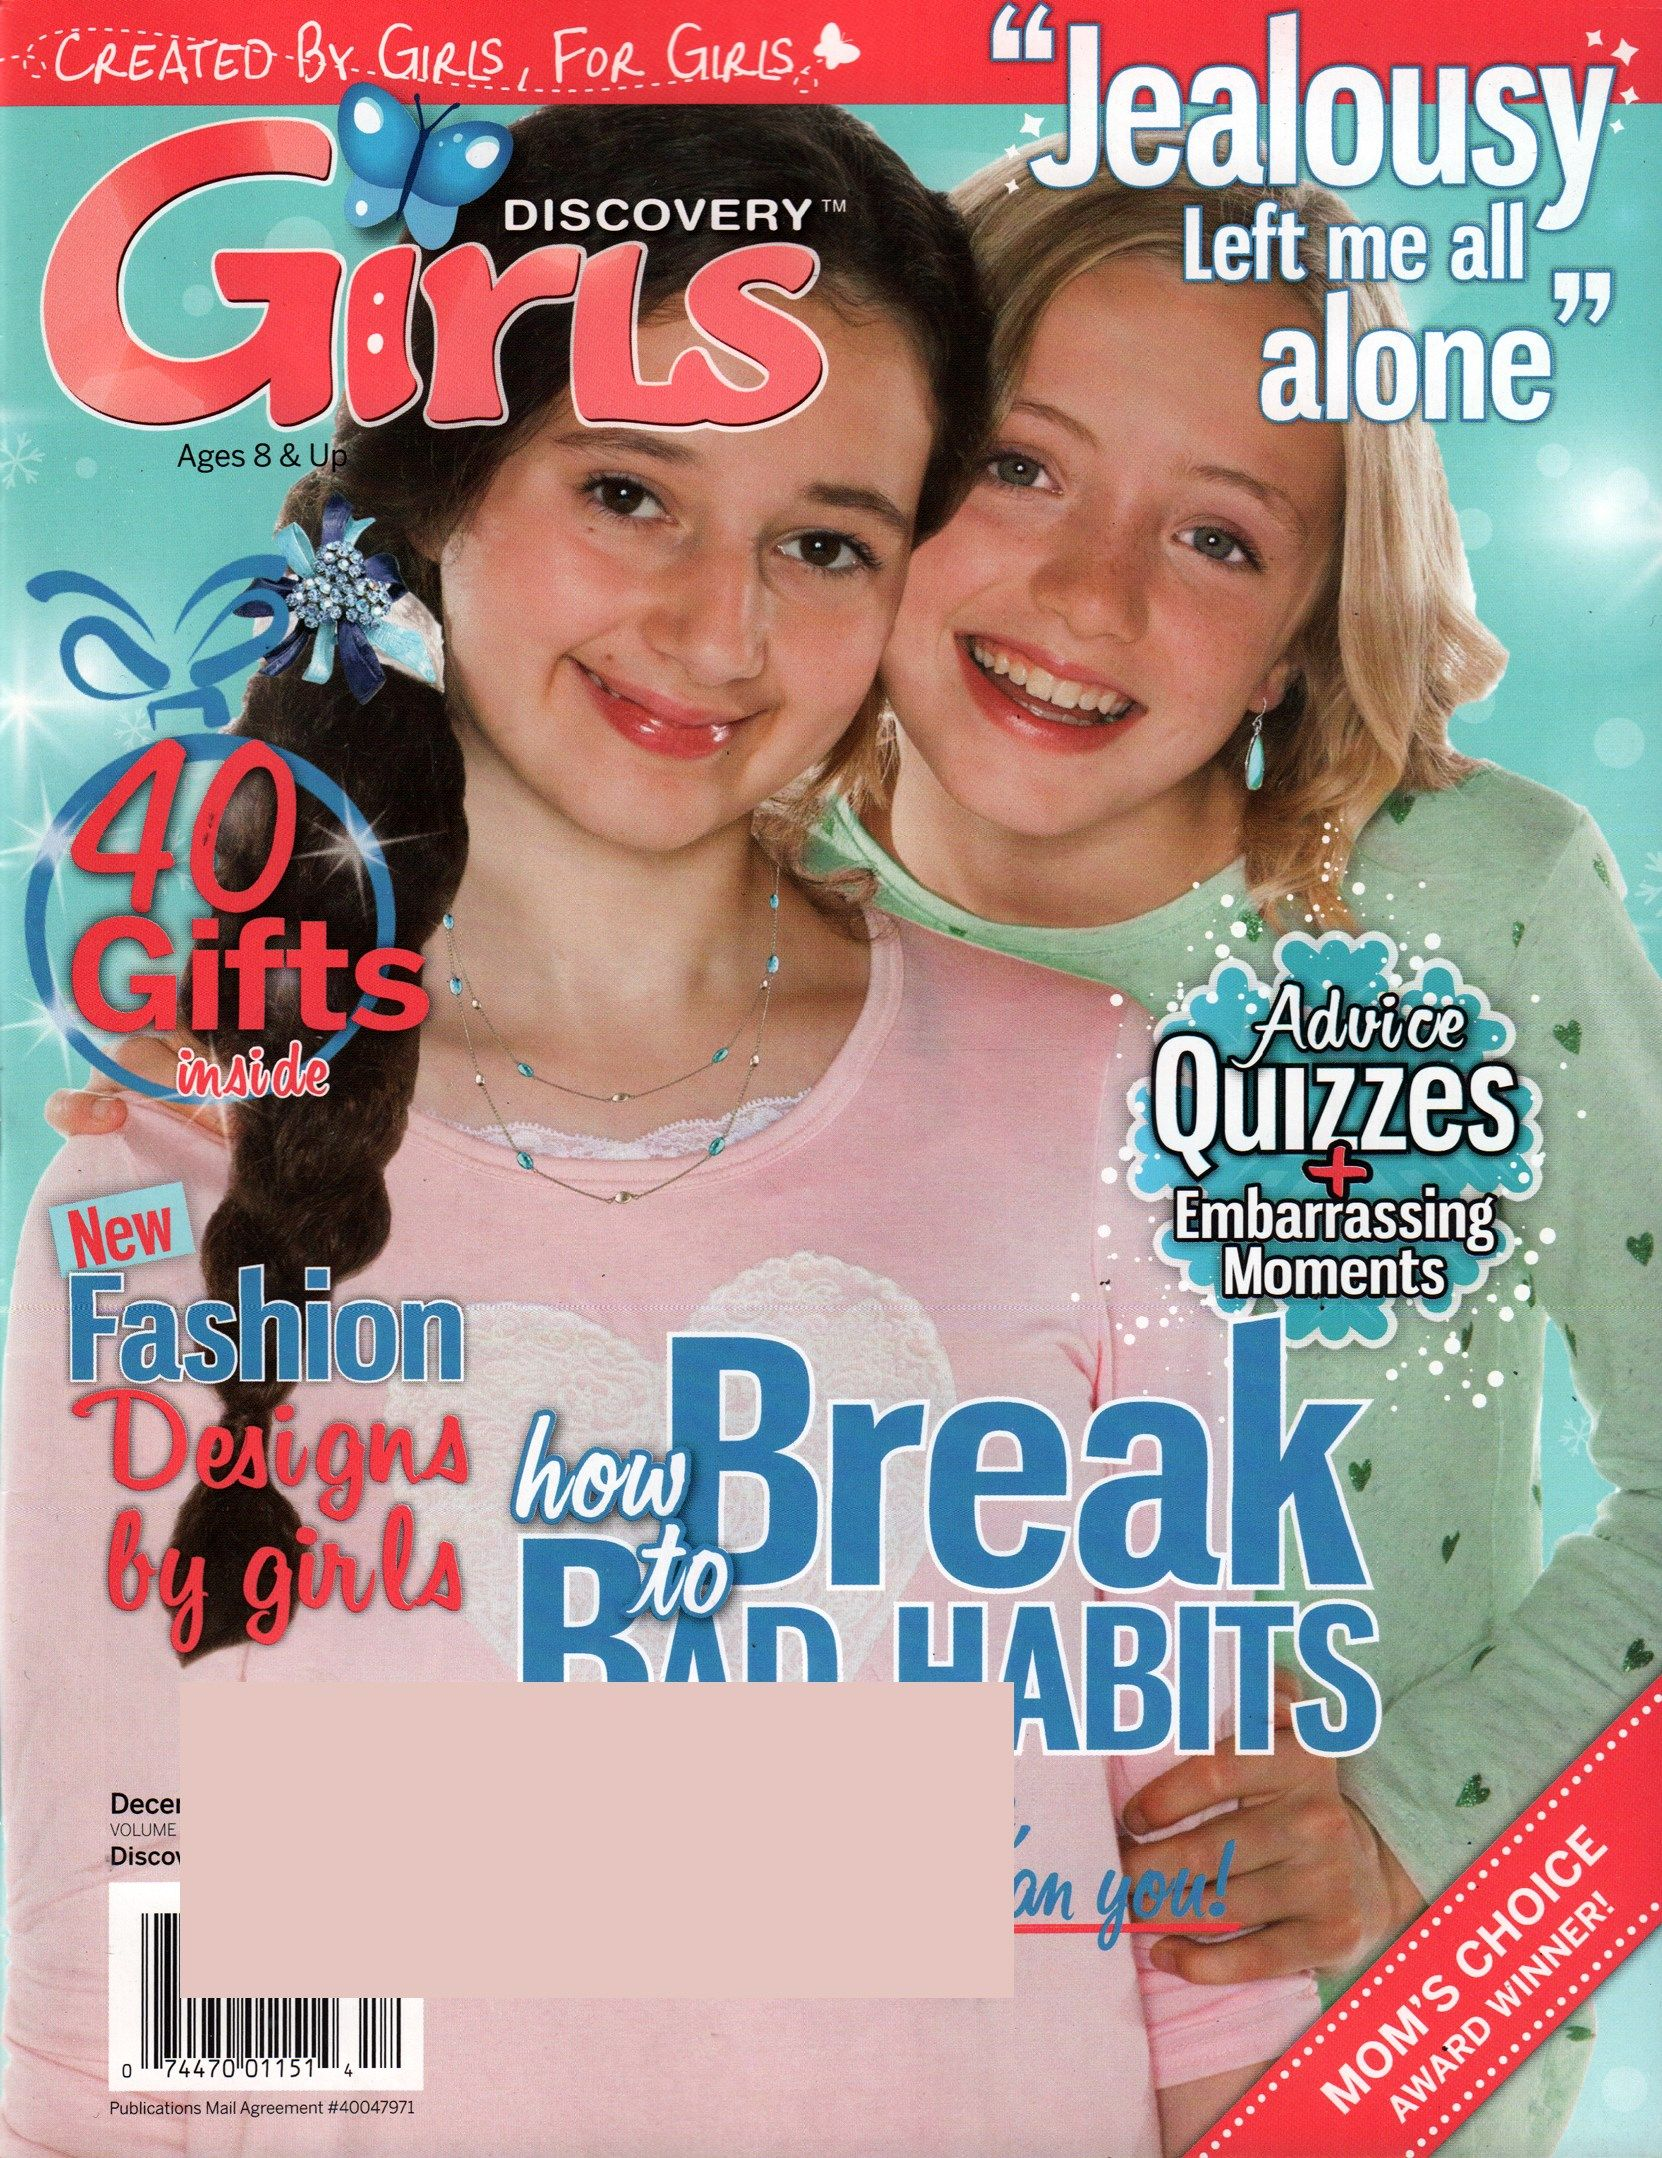 Discovery Girls Cover for 12/1/2015 | Tween Media | Pinterest